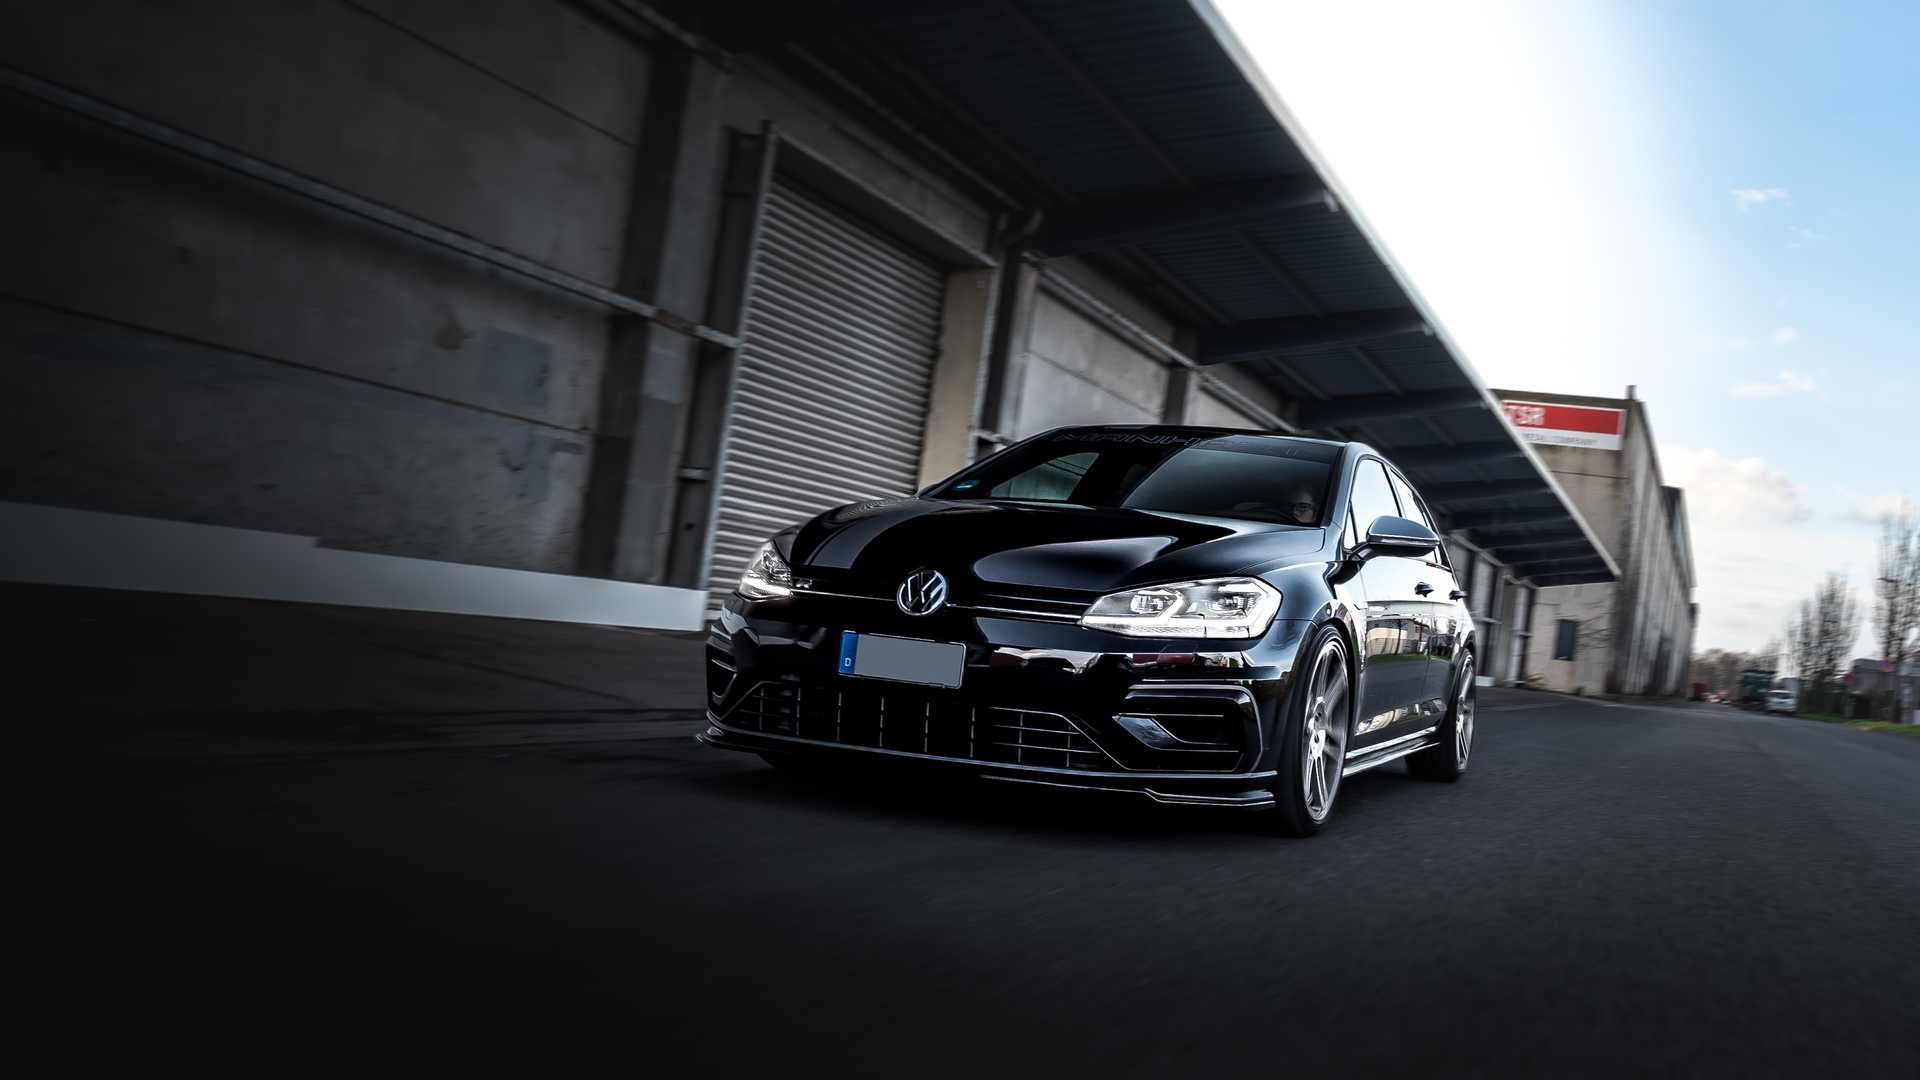 manhart-rs450-based-on-the-vw-golf-r (1)